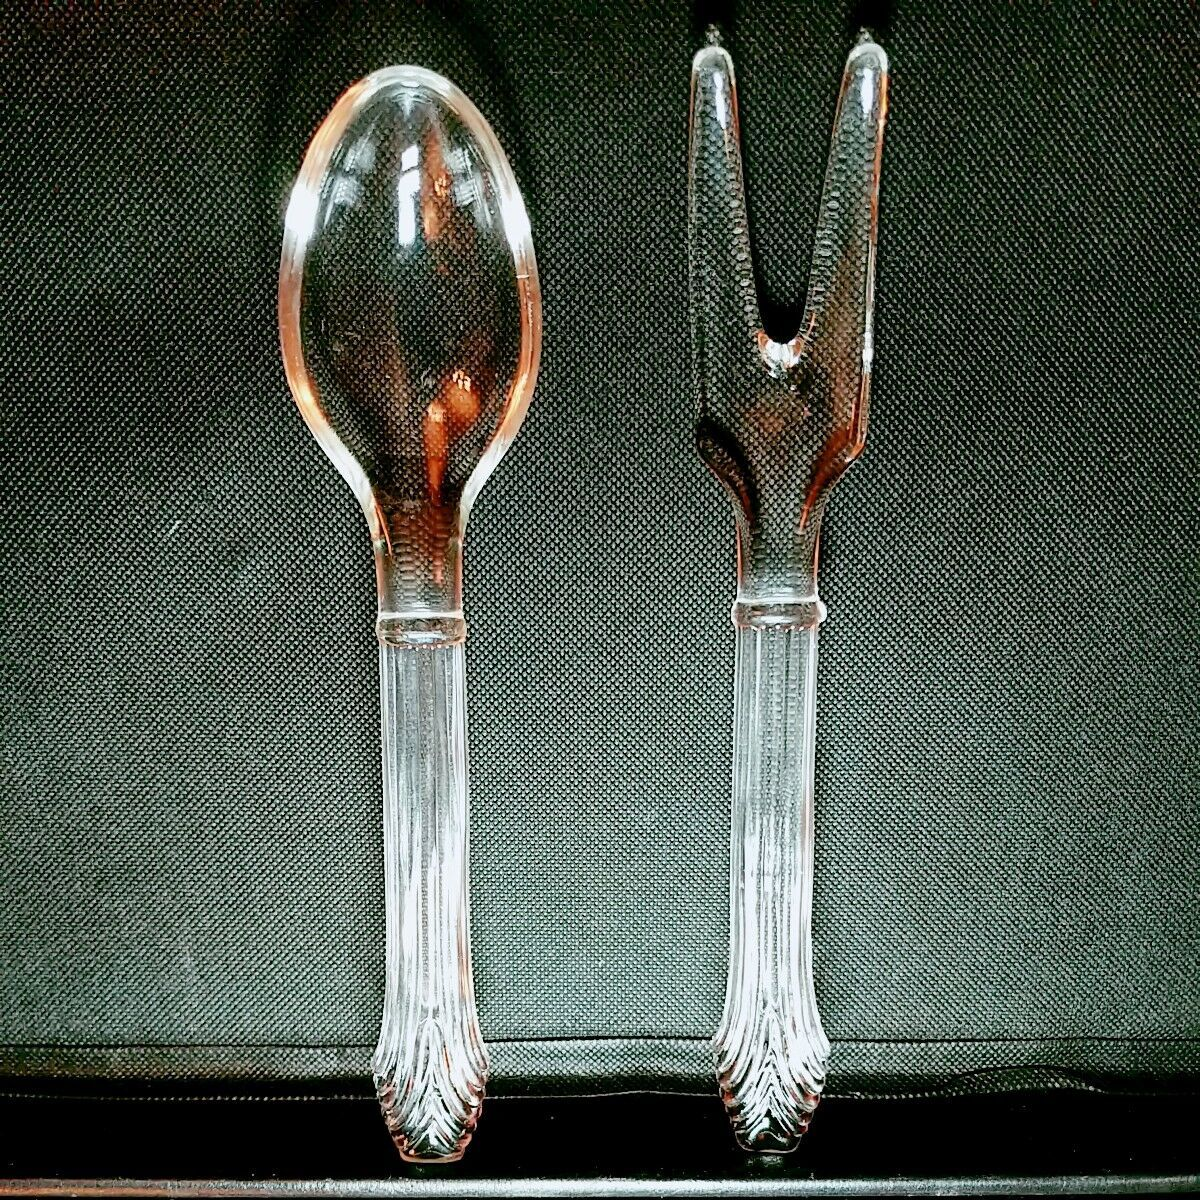 VINTAGE IMPERIAL GLASS SALAD FORK & SPOON SET - Excellent Condition